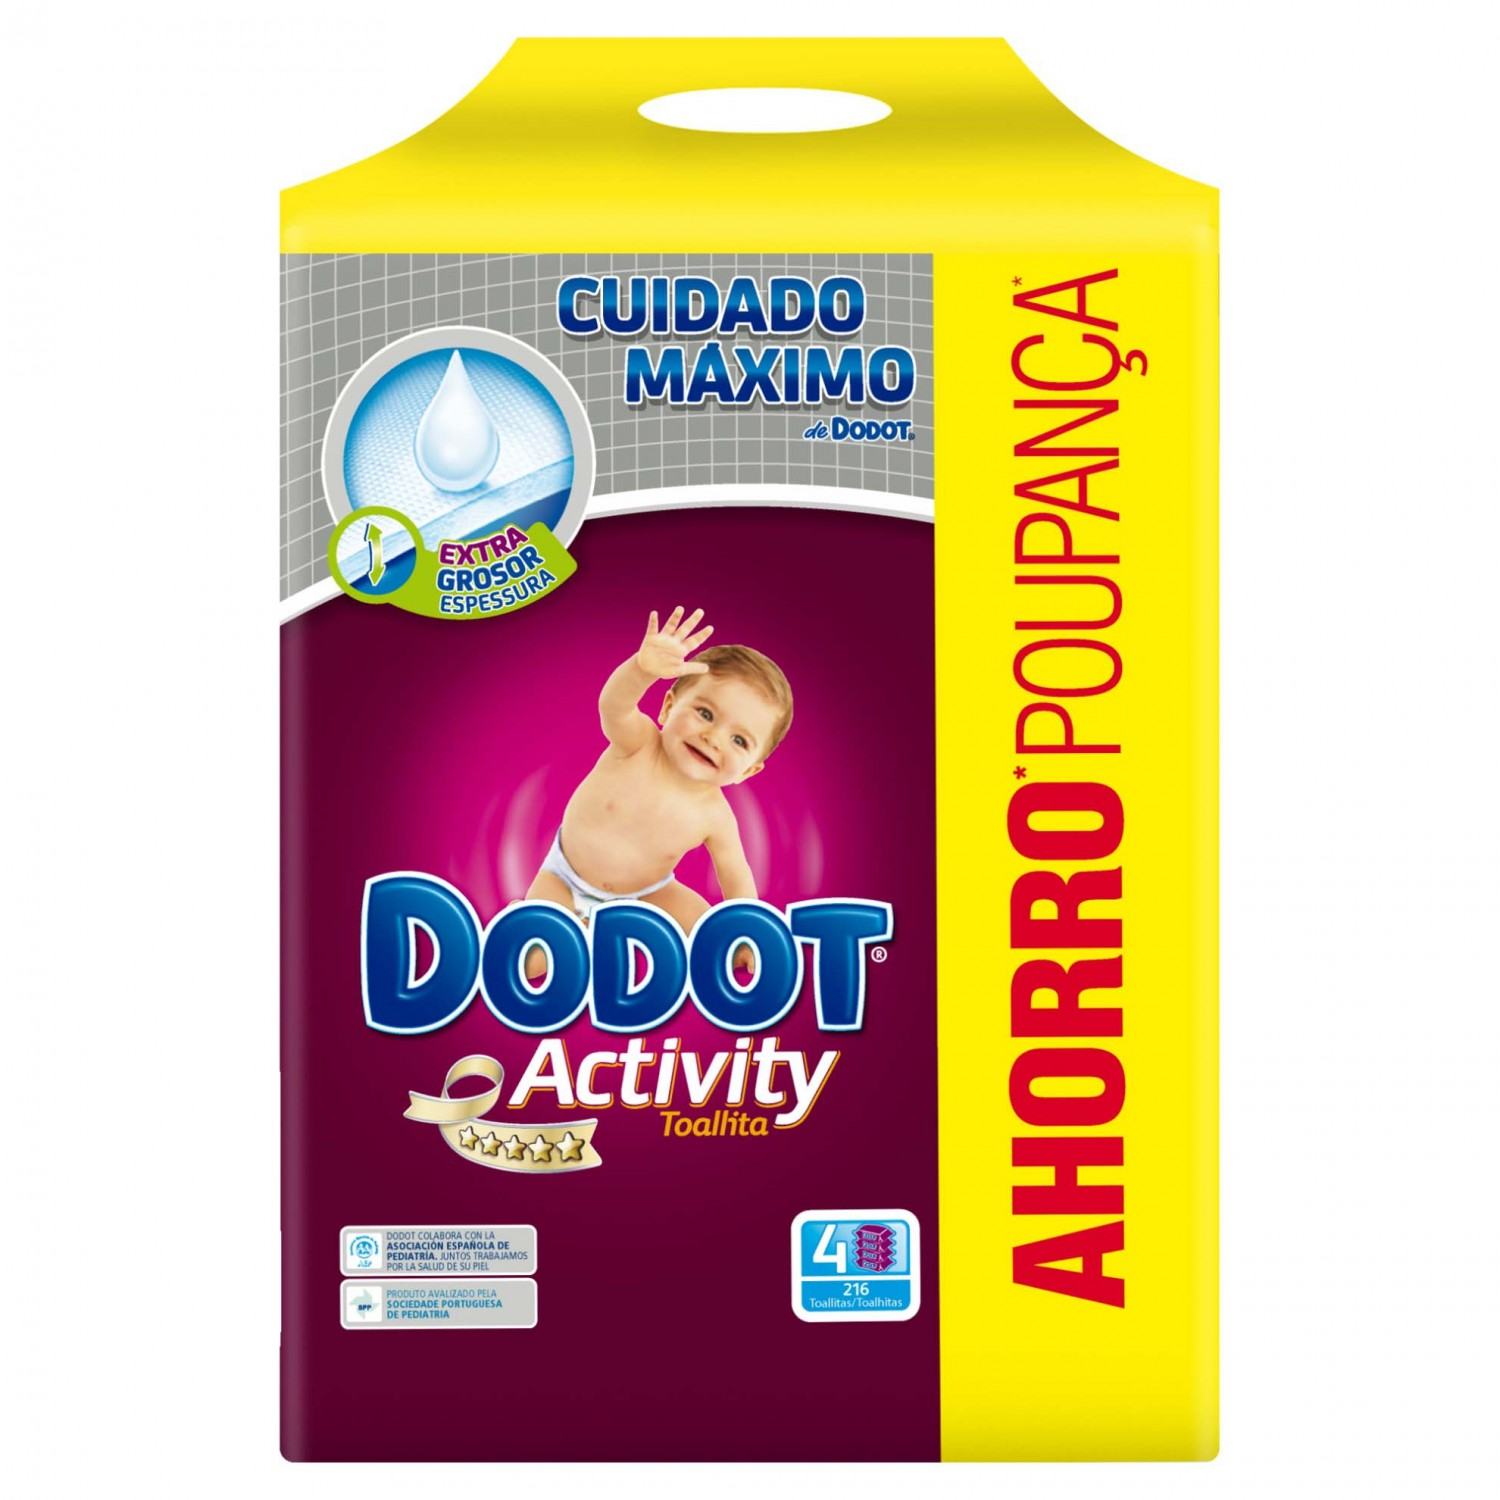 Dodot Activity toallitas recambio cuatro pack 216